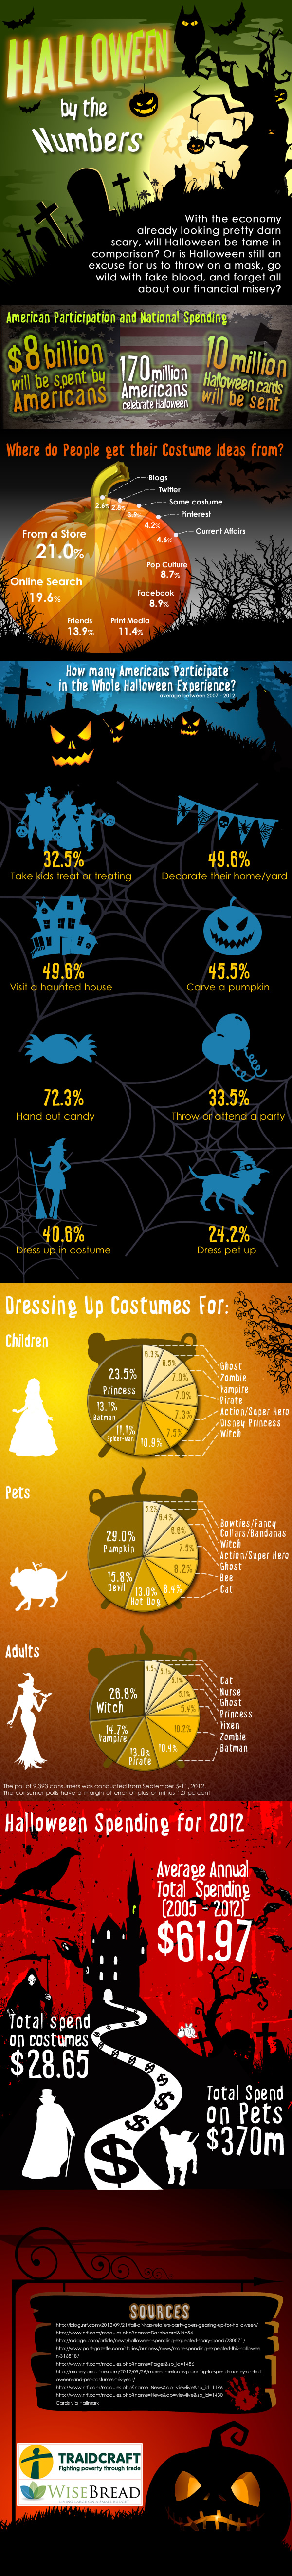 wisebread-halloween-infographic